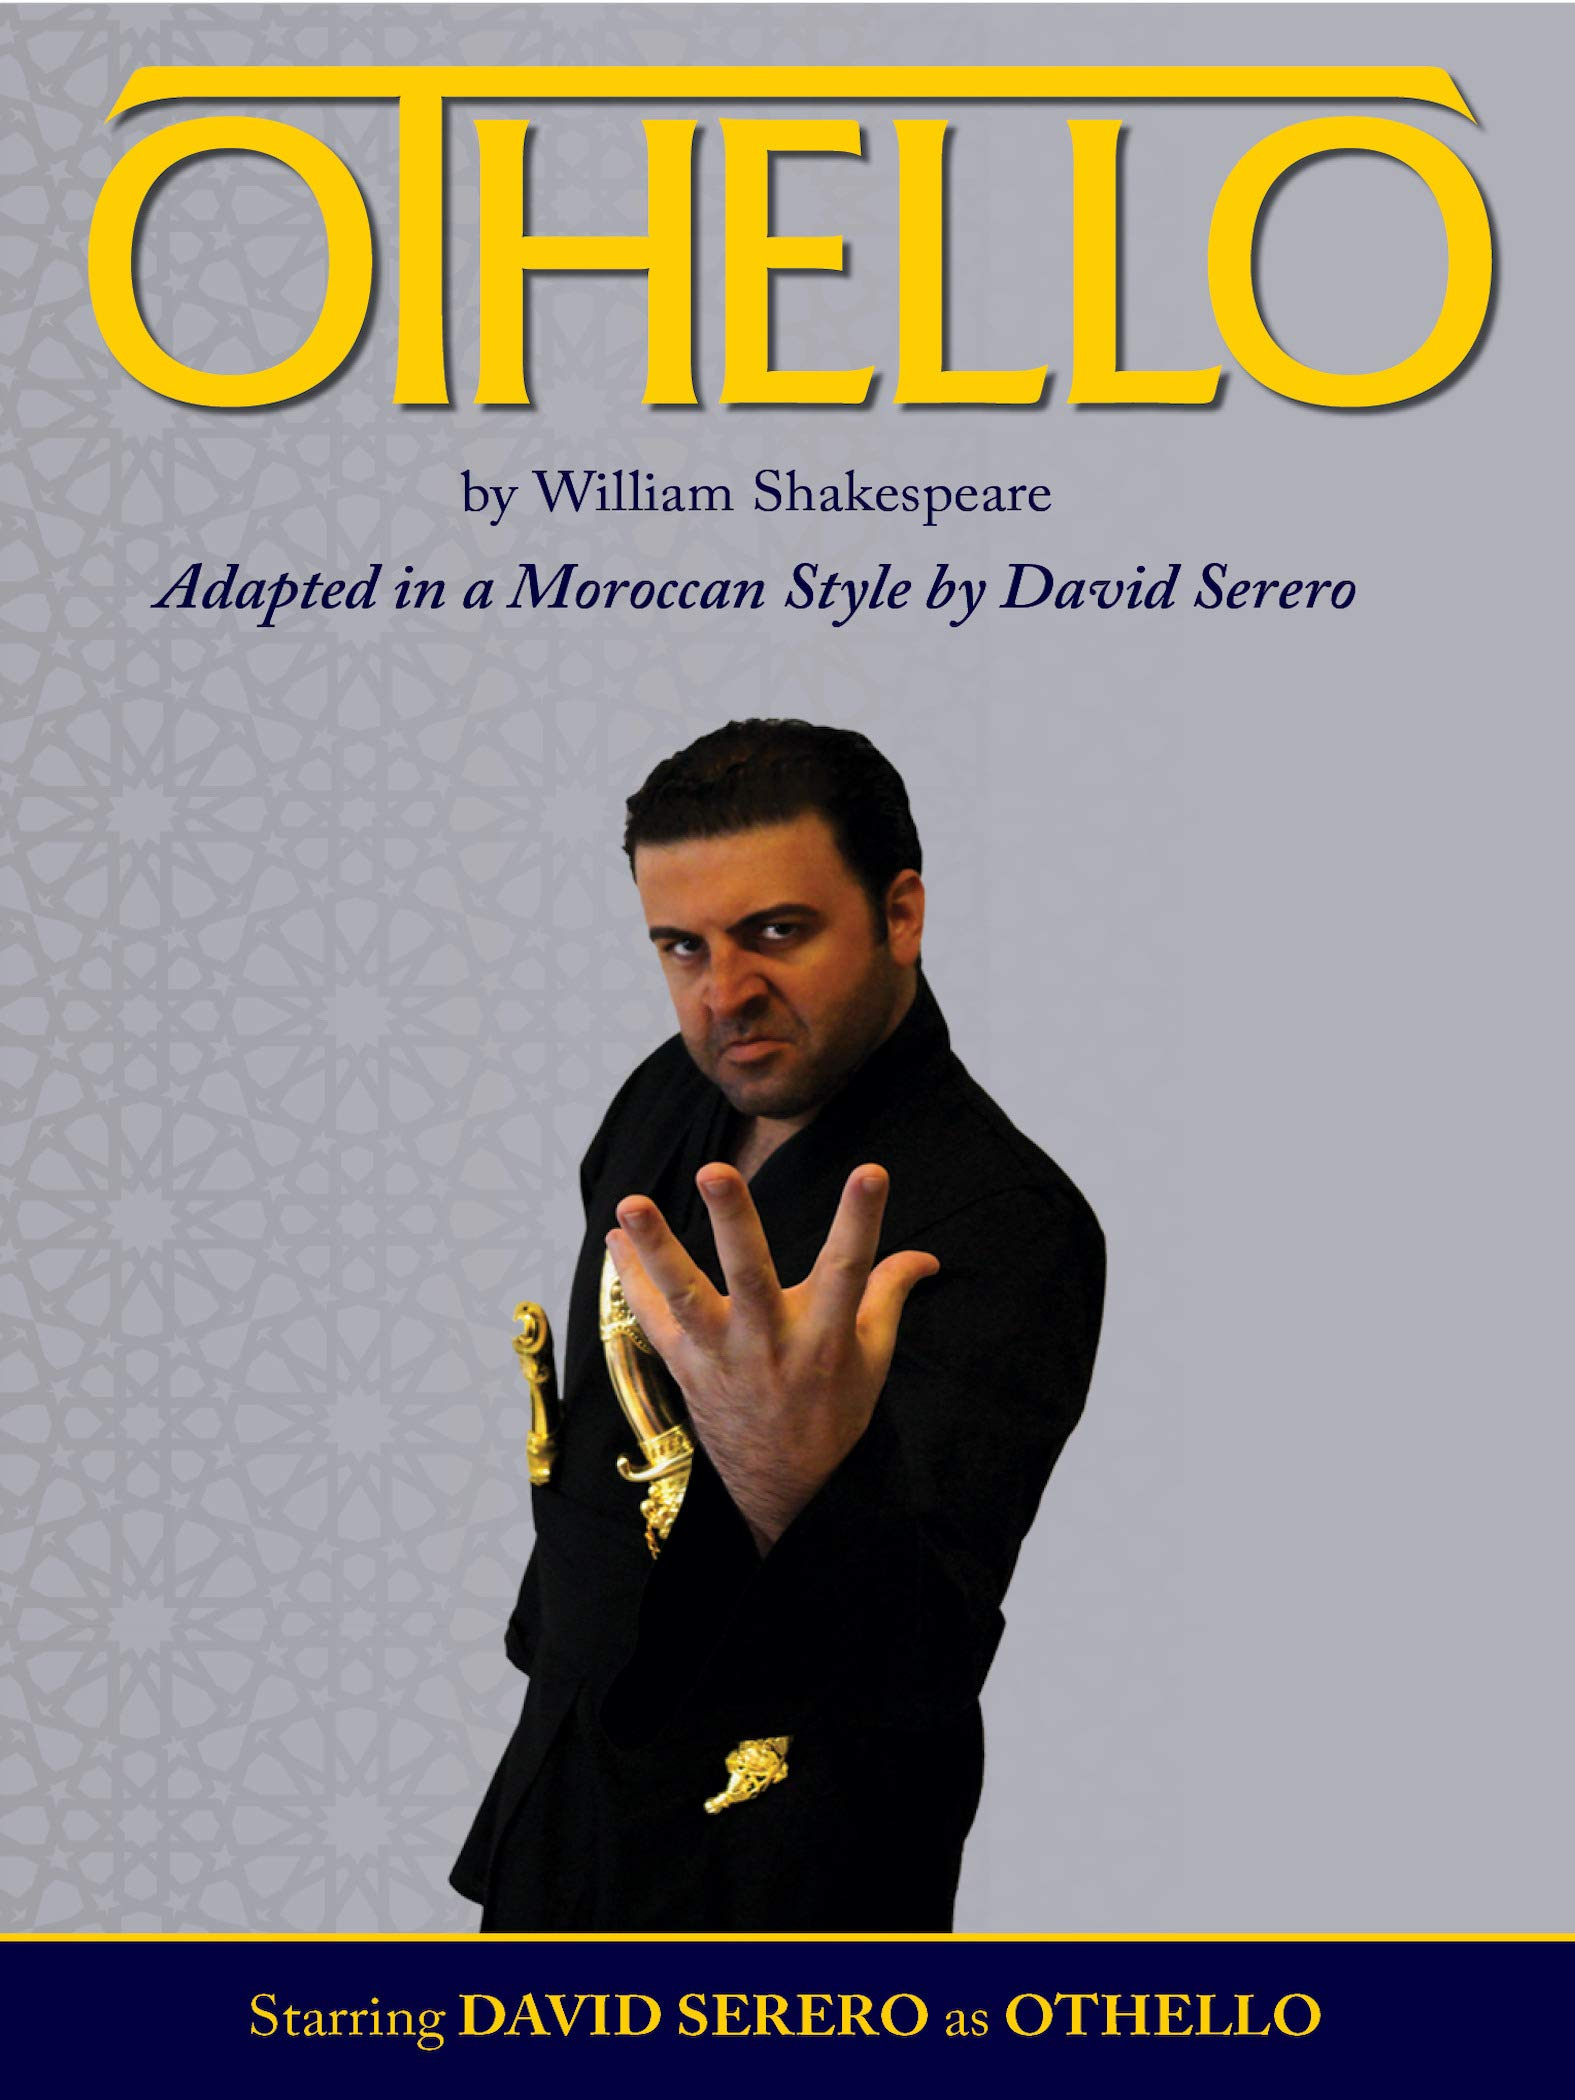 OTHELLO adapted in a Moroccan style (Off Broadway, 2016)